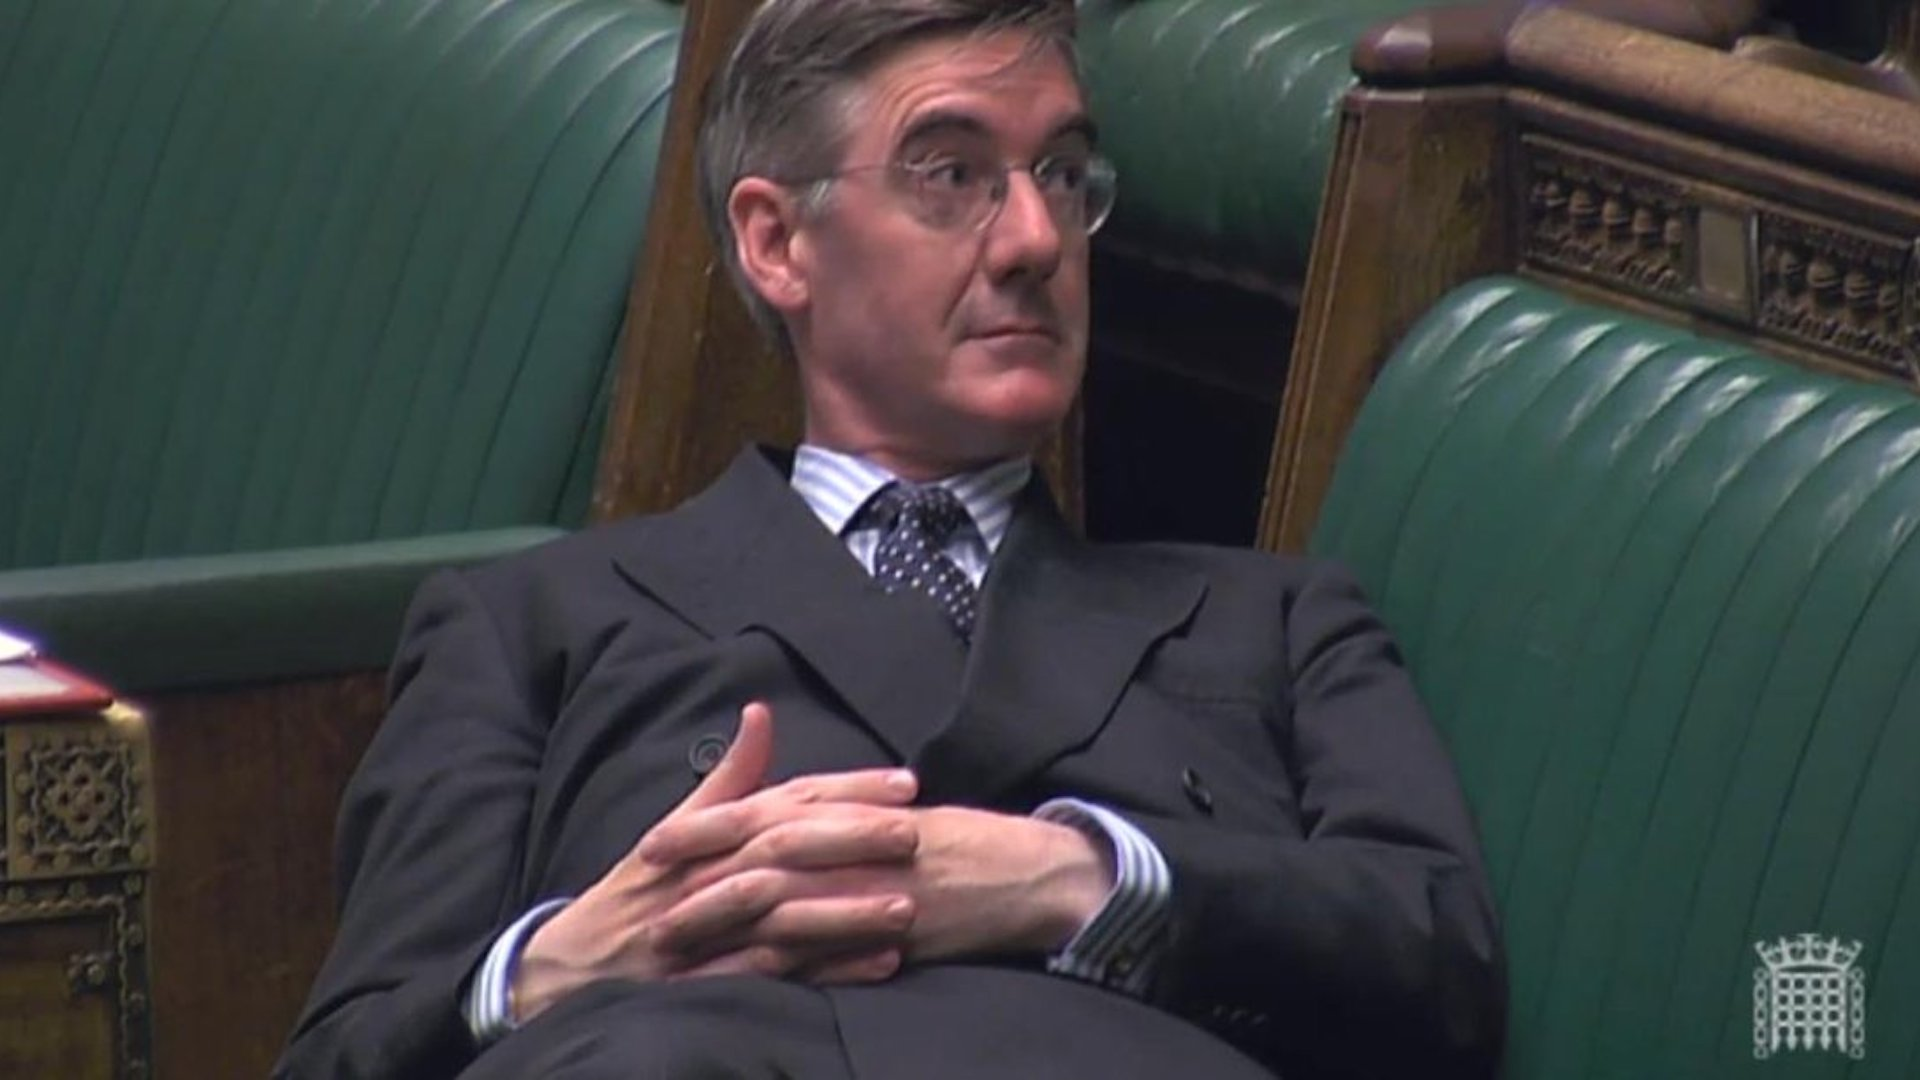 'Sit Up!': House of Commons leader upsets lawmakers with slouching